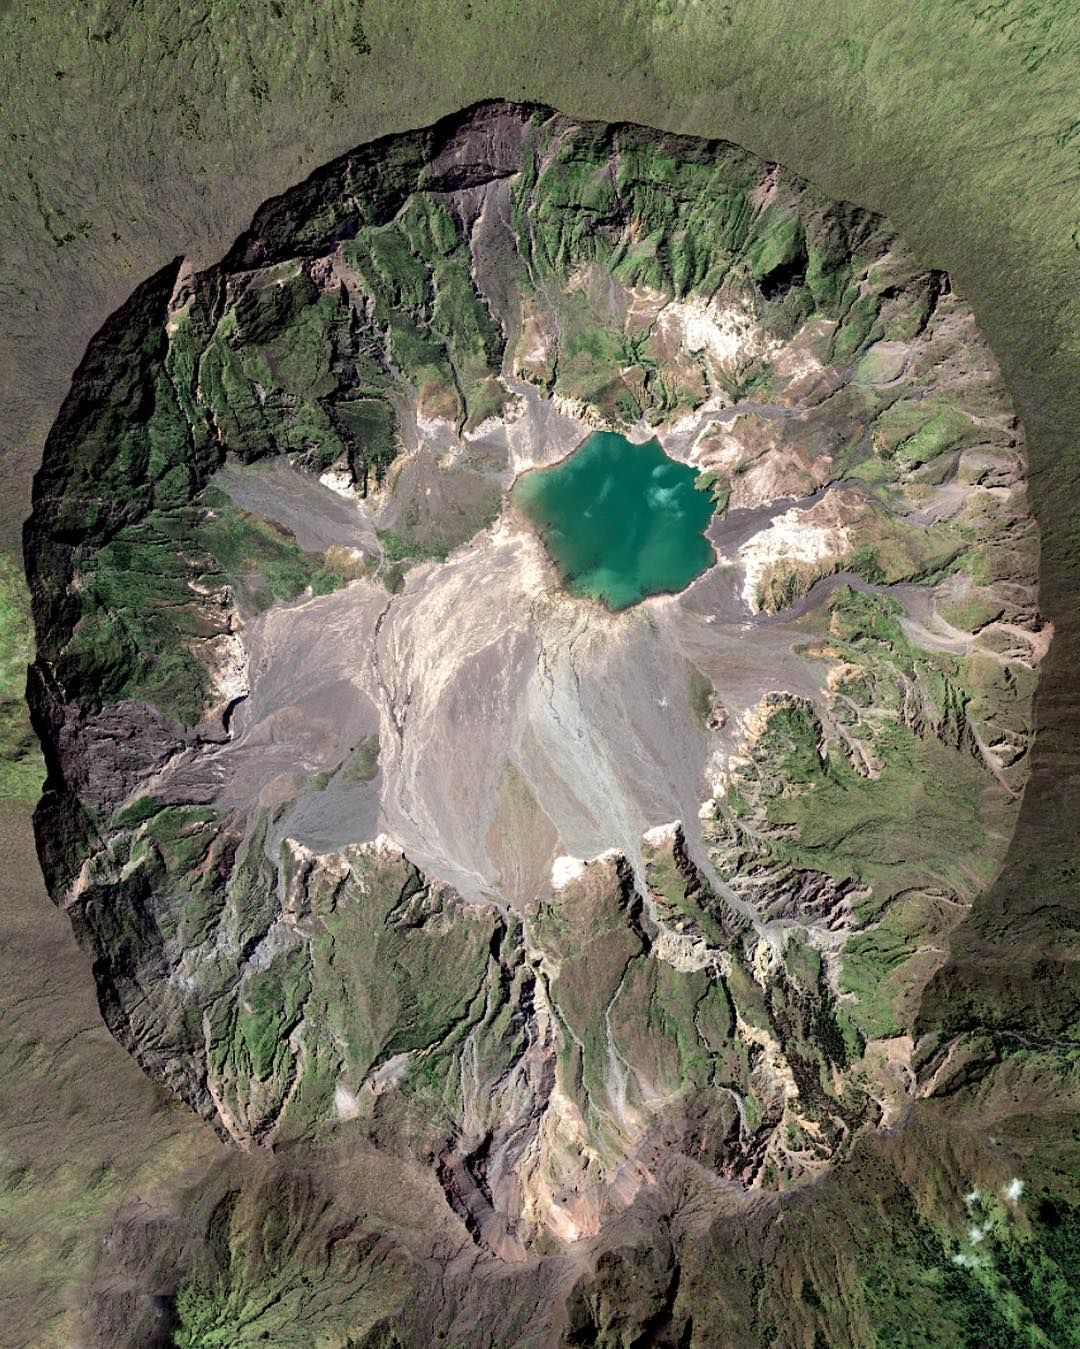 Mount Tambora Is An Active Stratovolcano On Sumbawa One Of Indonesia S Lesser Sunda Islands On This Day April 17 In 1815 Mount Tambora Blew Its Top In The